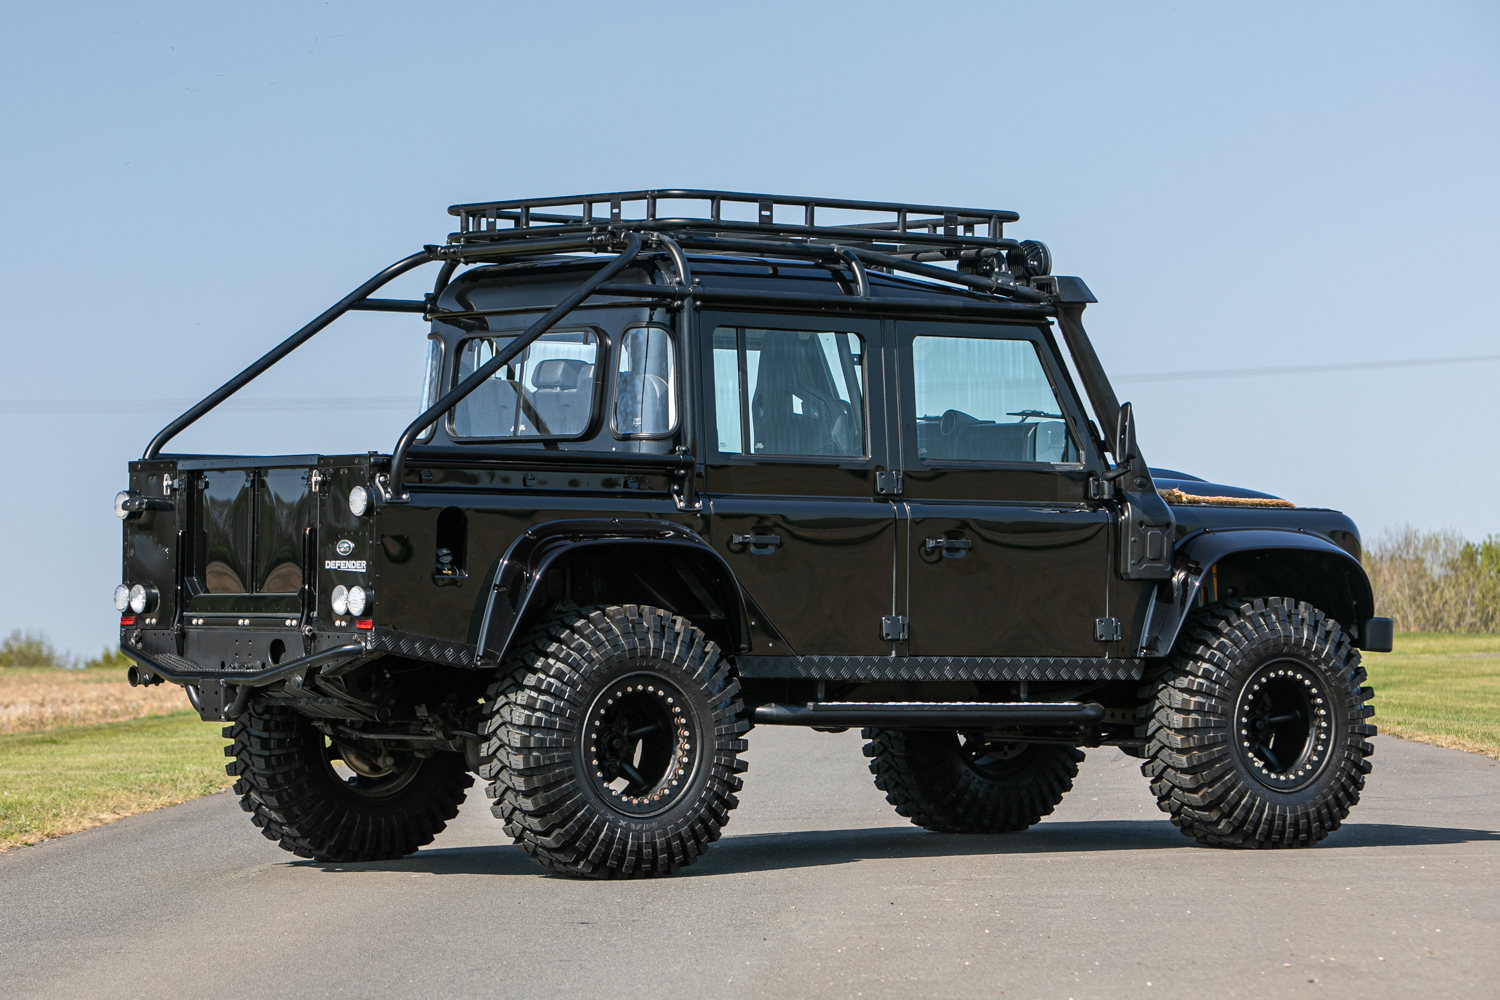 2015 Land Rover Defender 110 SVX 'Spectre' JB24 - Image 4 of 26